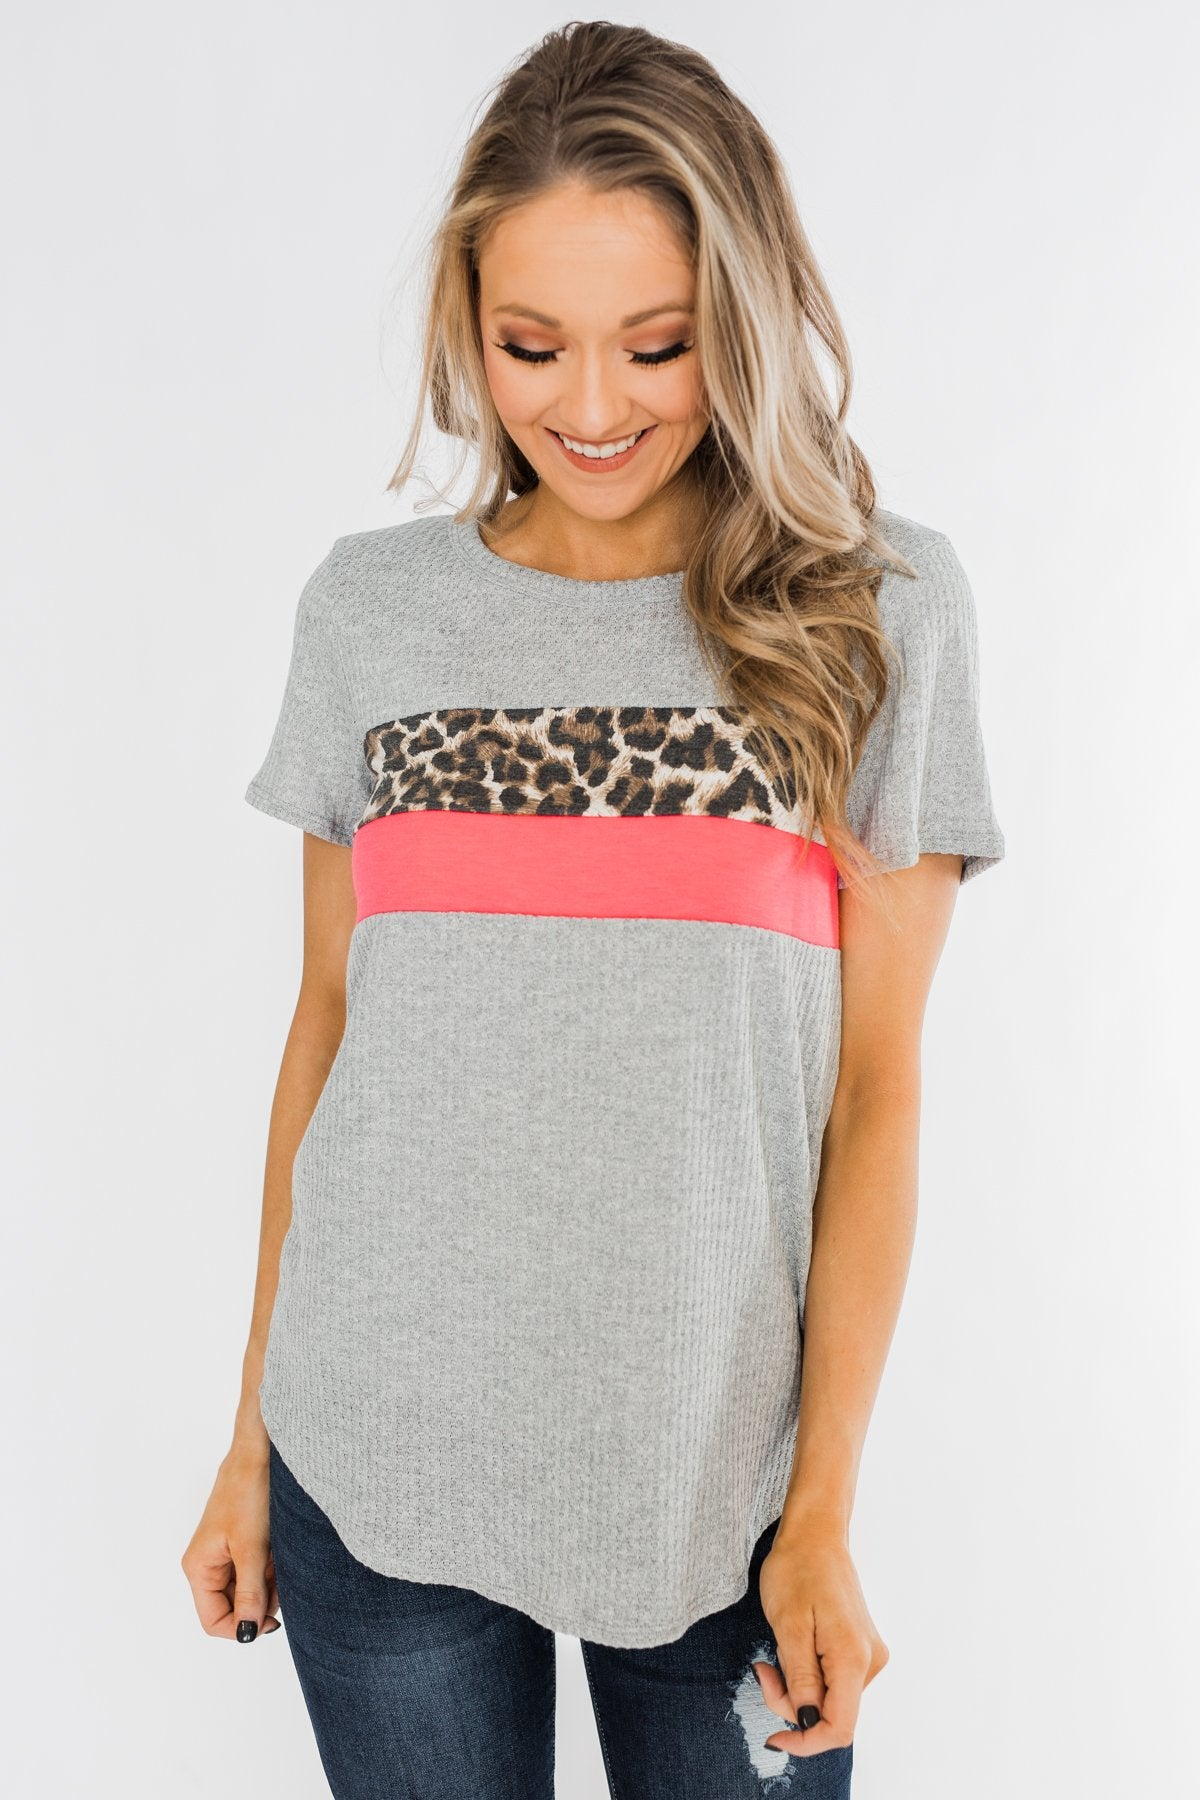 Up For An Adventure Striped Top- Heather Grey